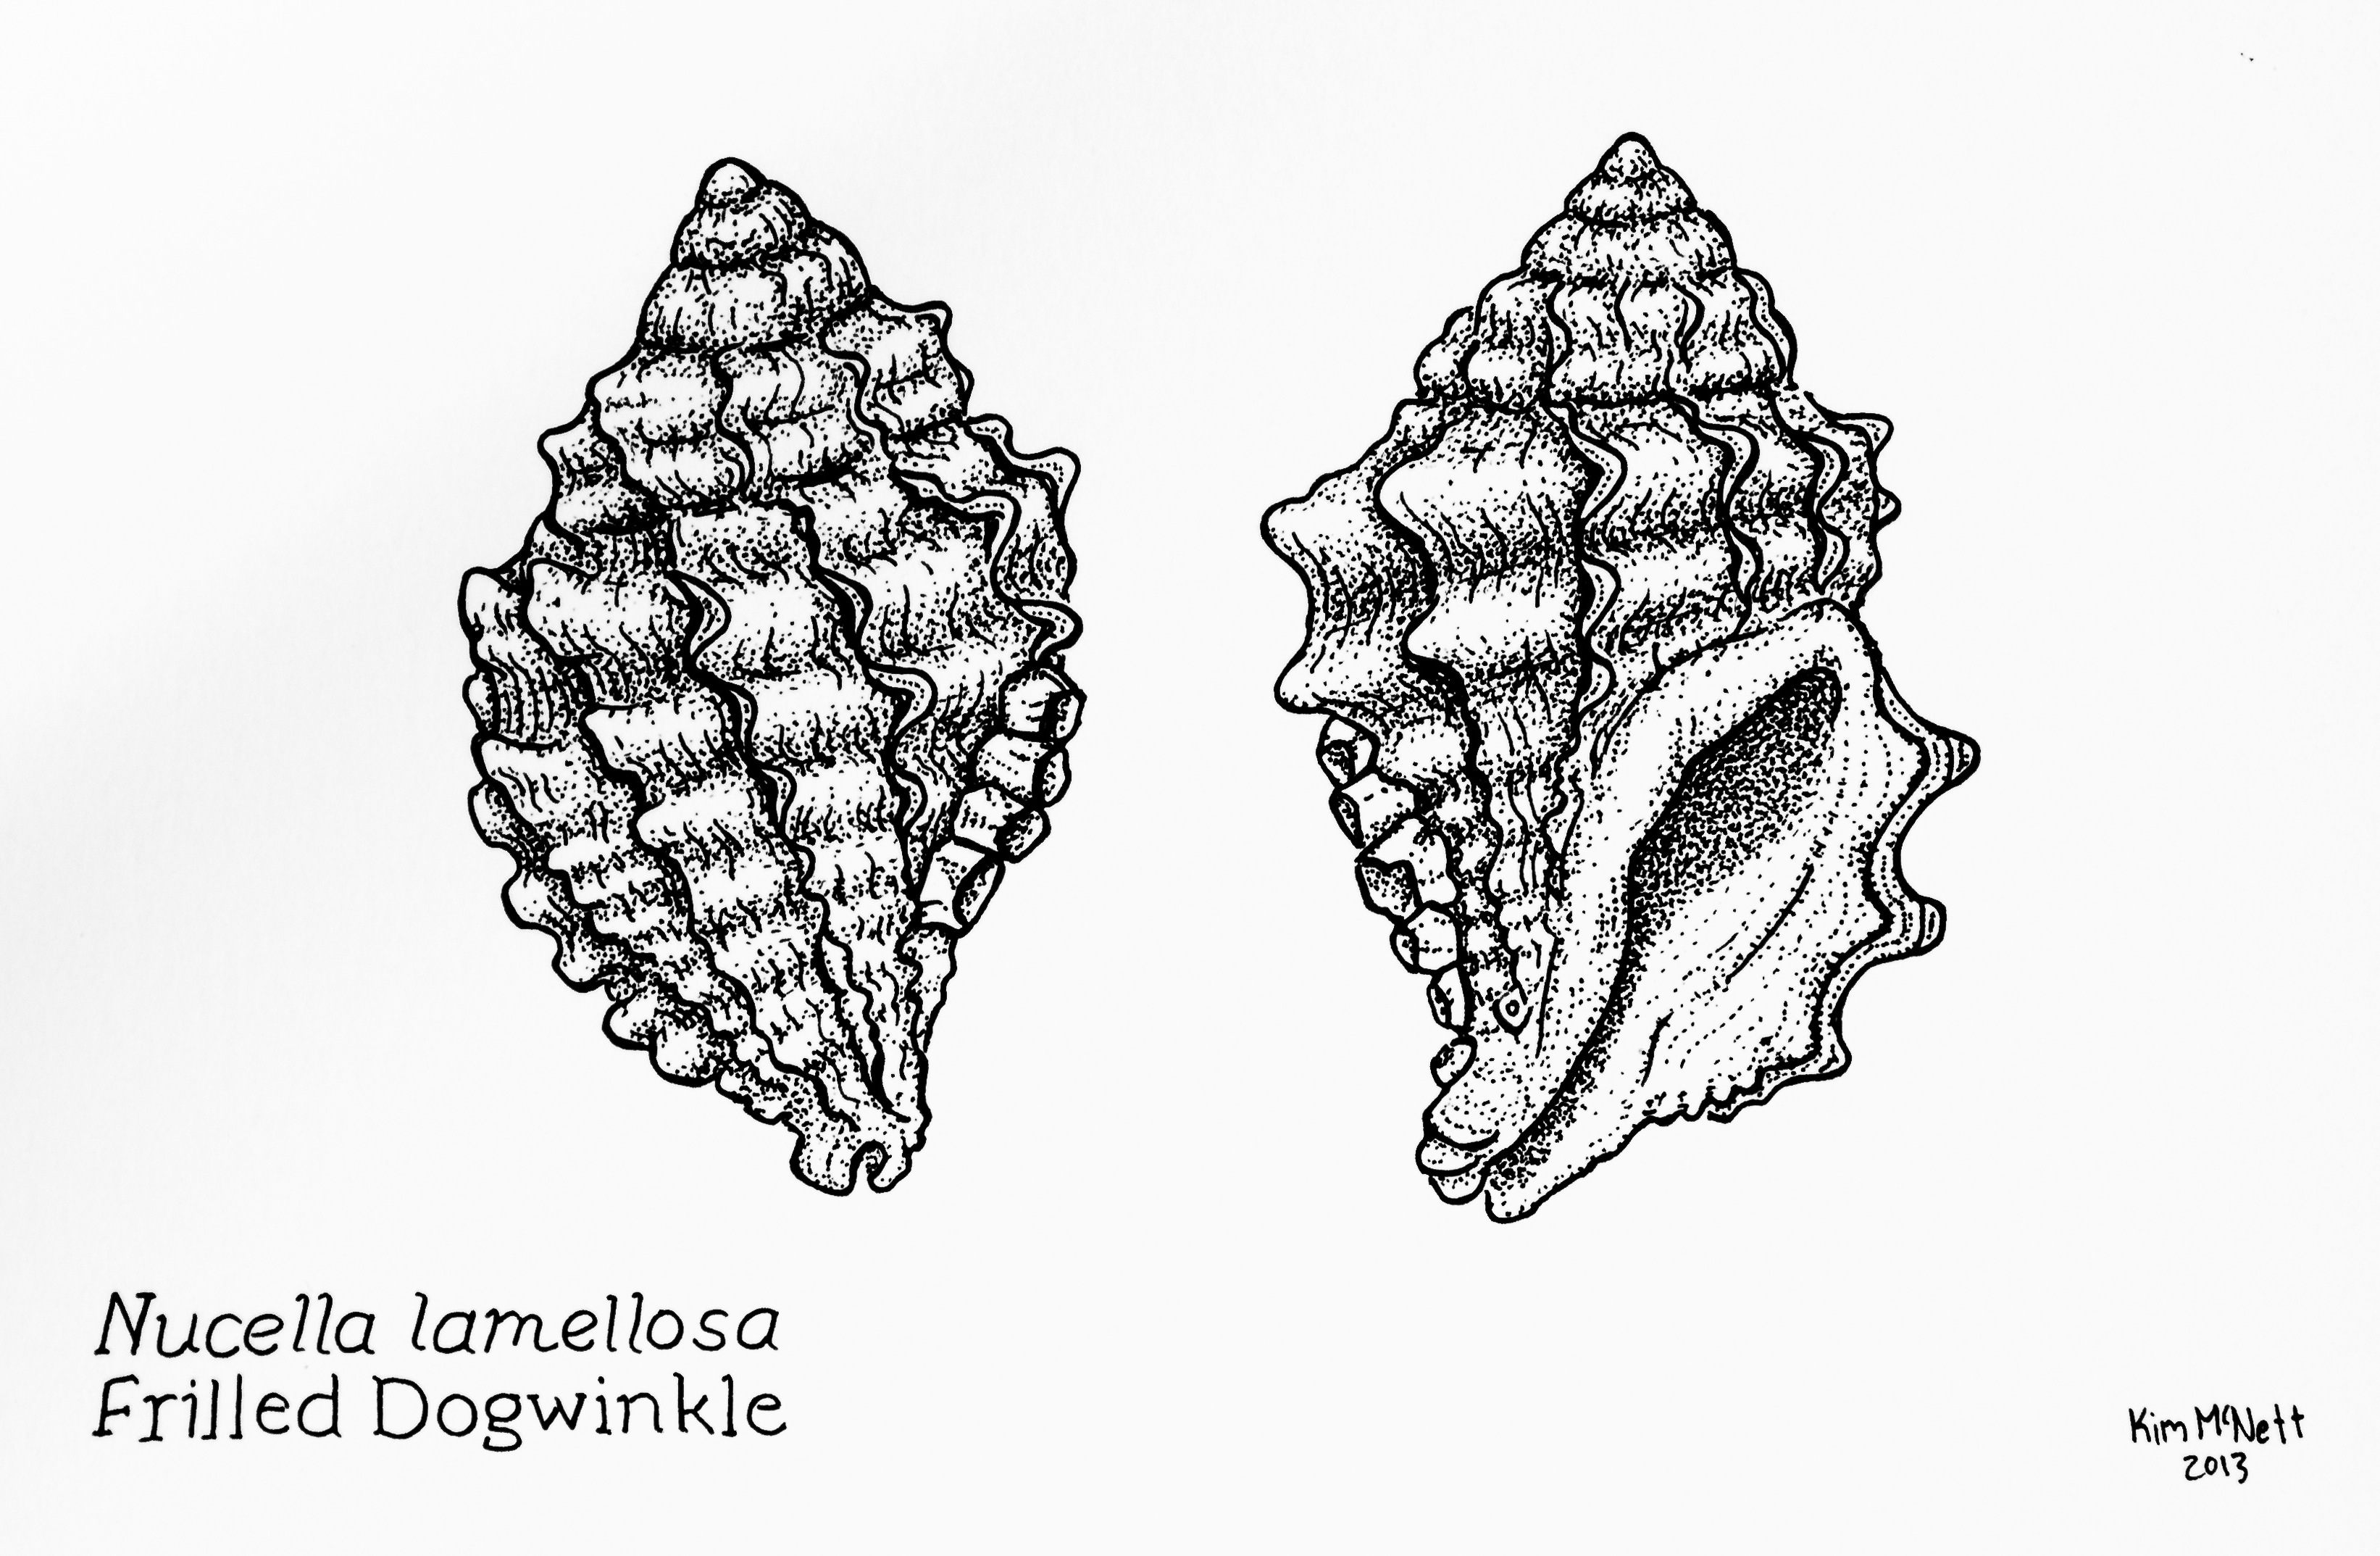 Frilled Dogwinkle, Nucella lamellosa drawing, dogwinkle drawing, marine snail drawing, seashell, seashell drawing